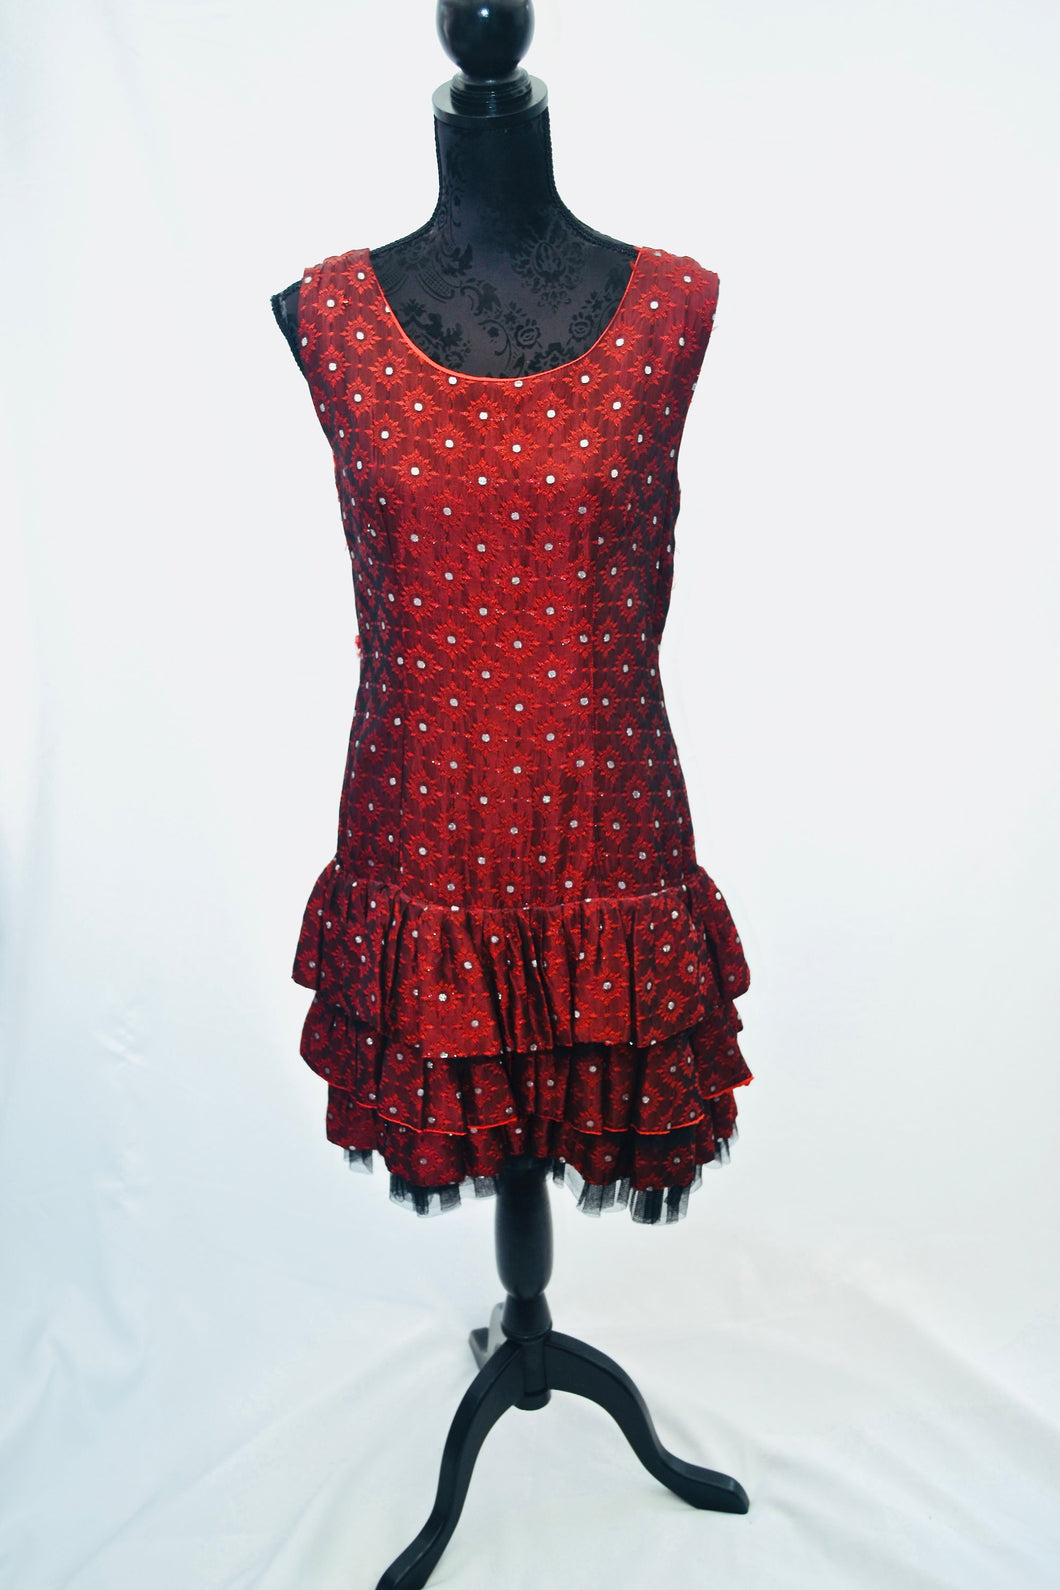 1950s Ra Ra dress in red and silver, 50s party dress, special occasions outfit, Est UK size 12